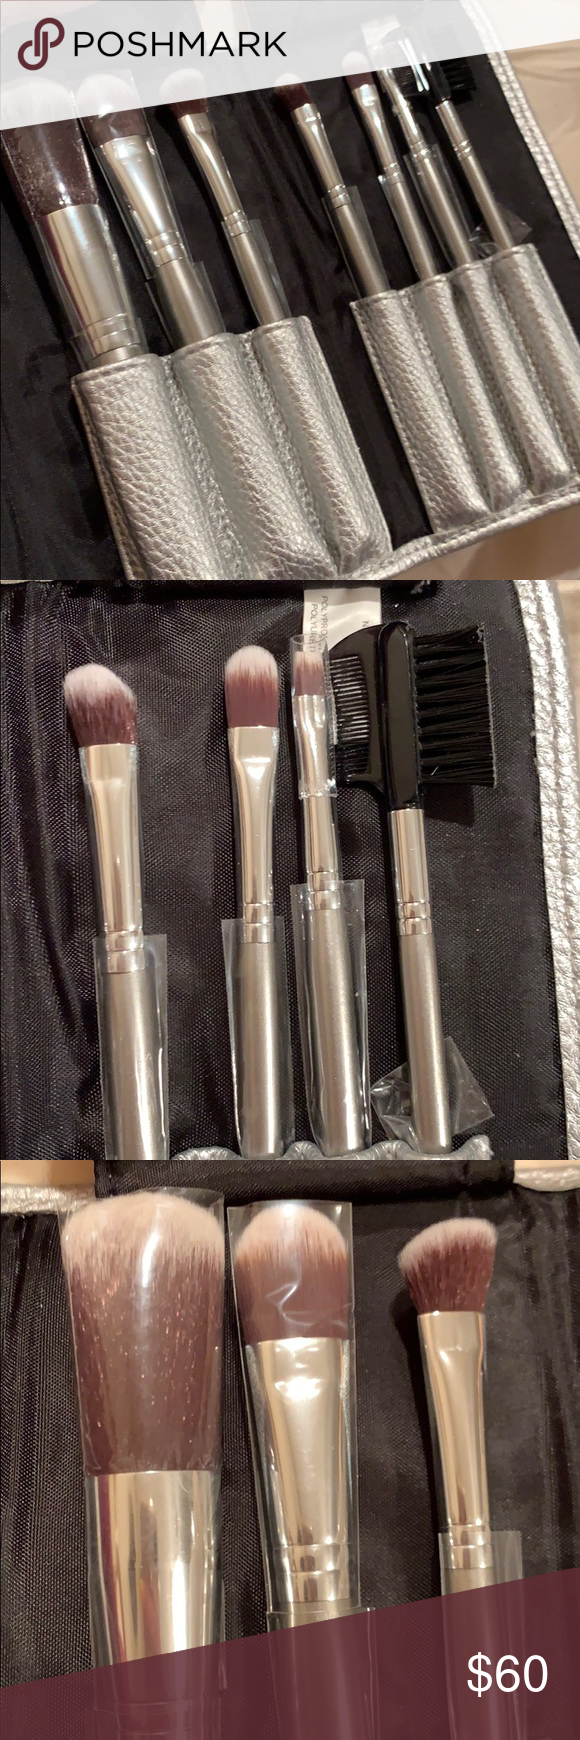 Sephora Travel 7 piece makeup brush set NWT NWT Sephora